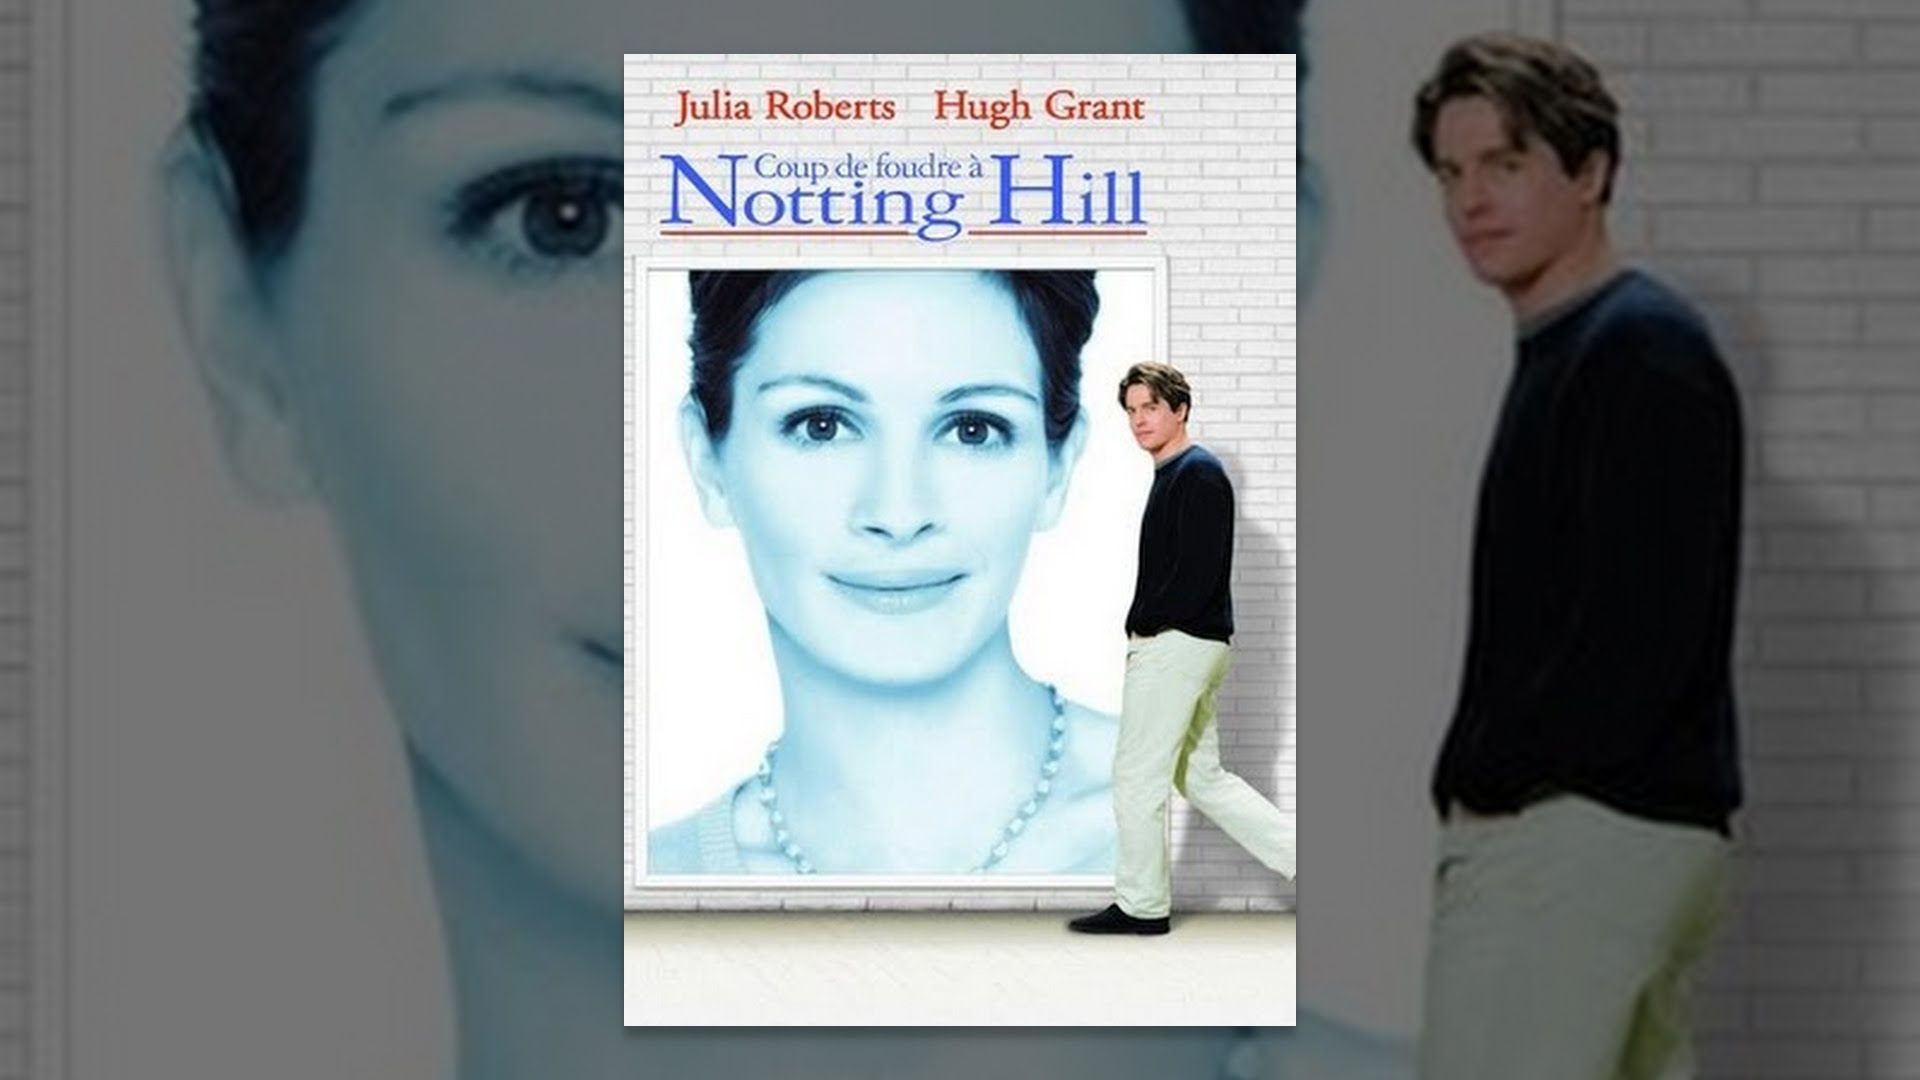 Coup de foudre notting hill vf youtube - Coup de foudre a notting hill streaming vf ...